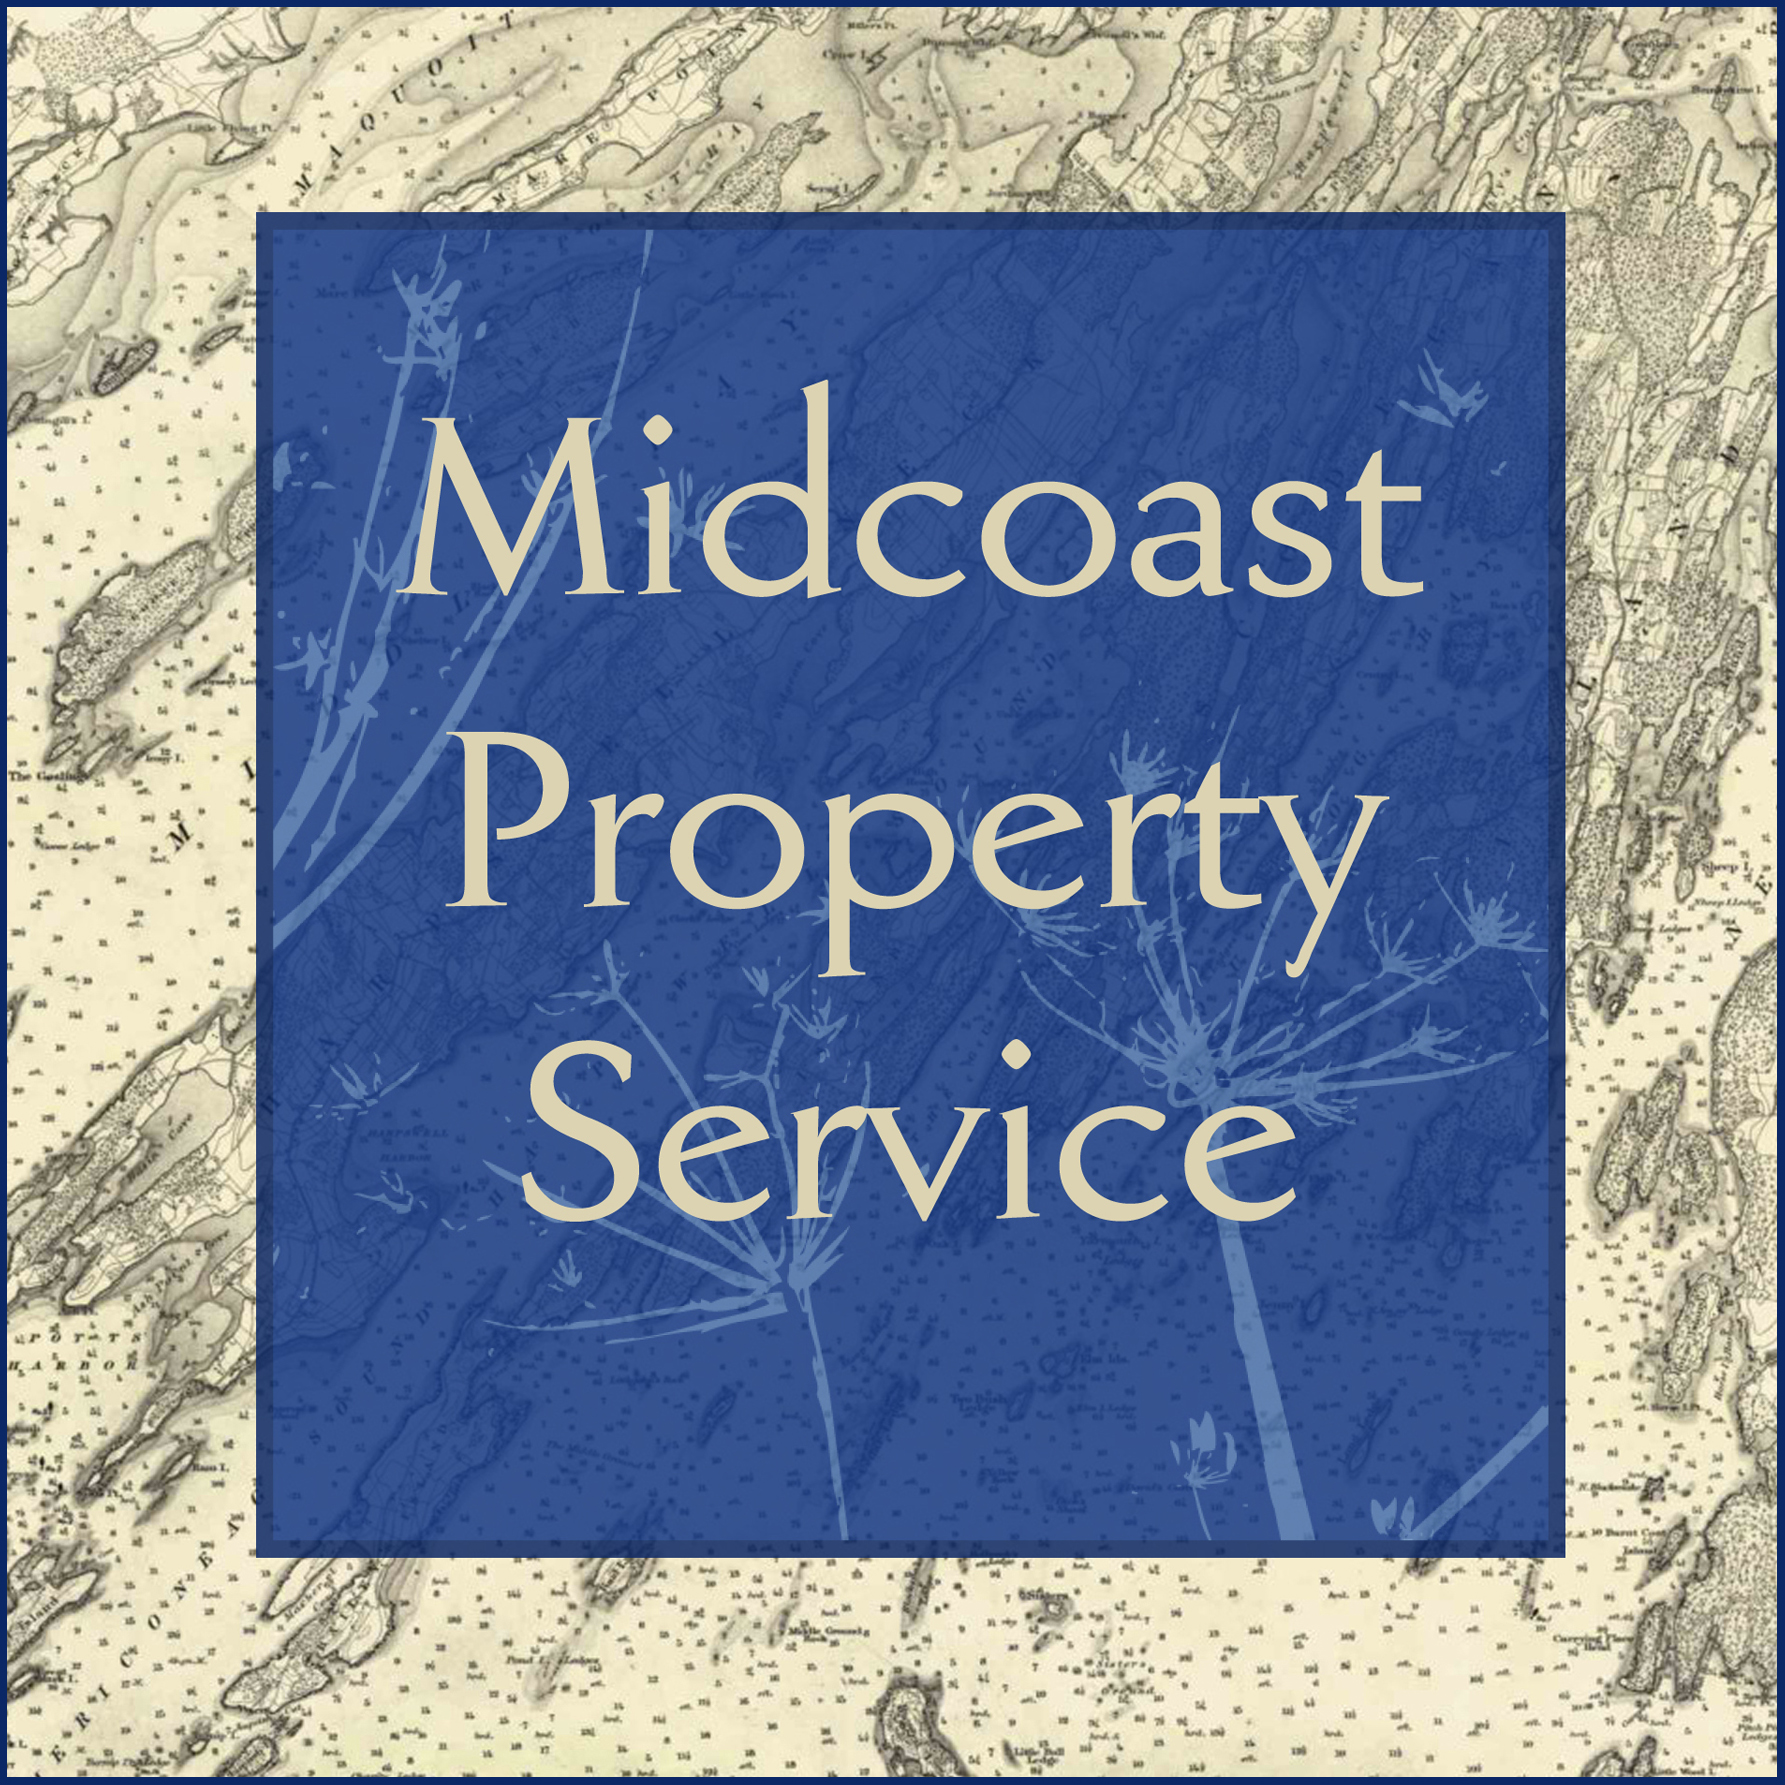 Midcoast Property Service